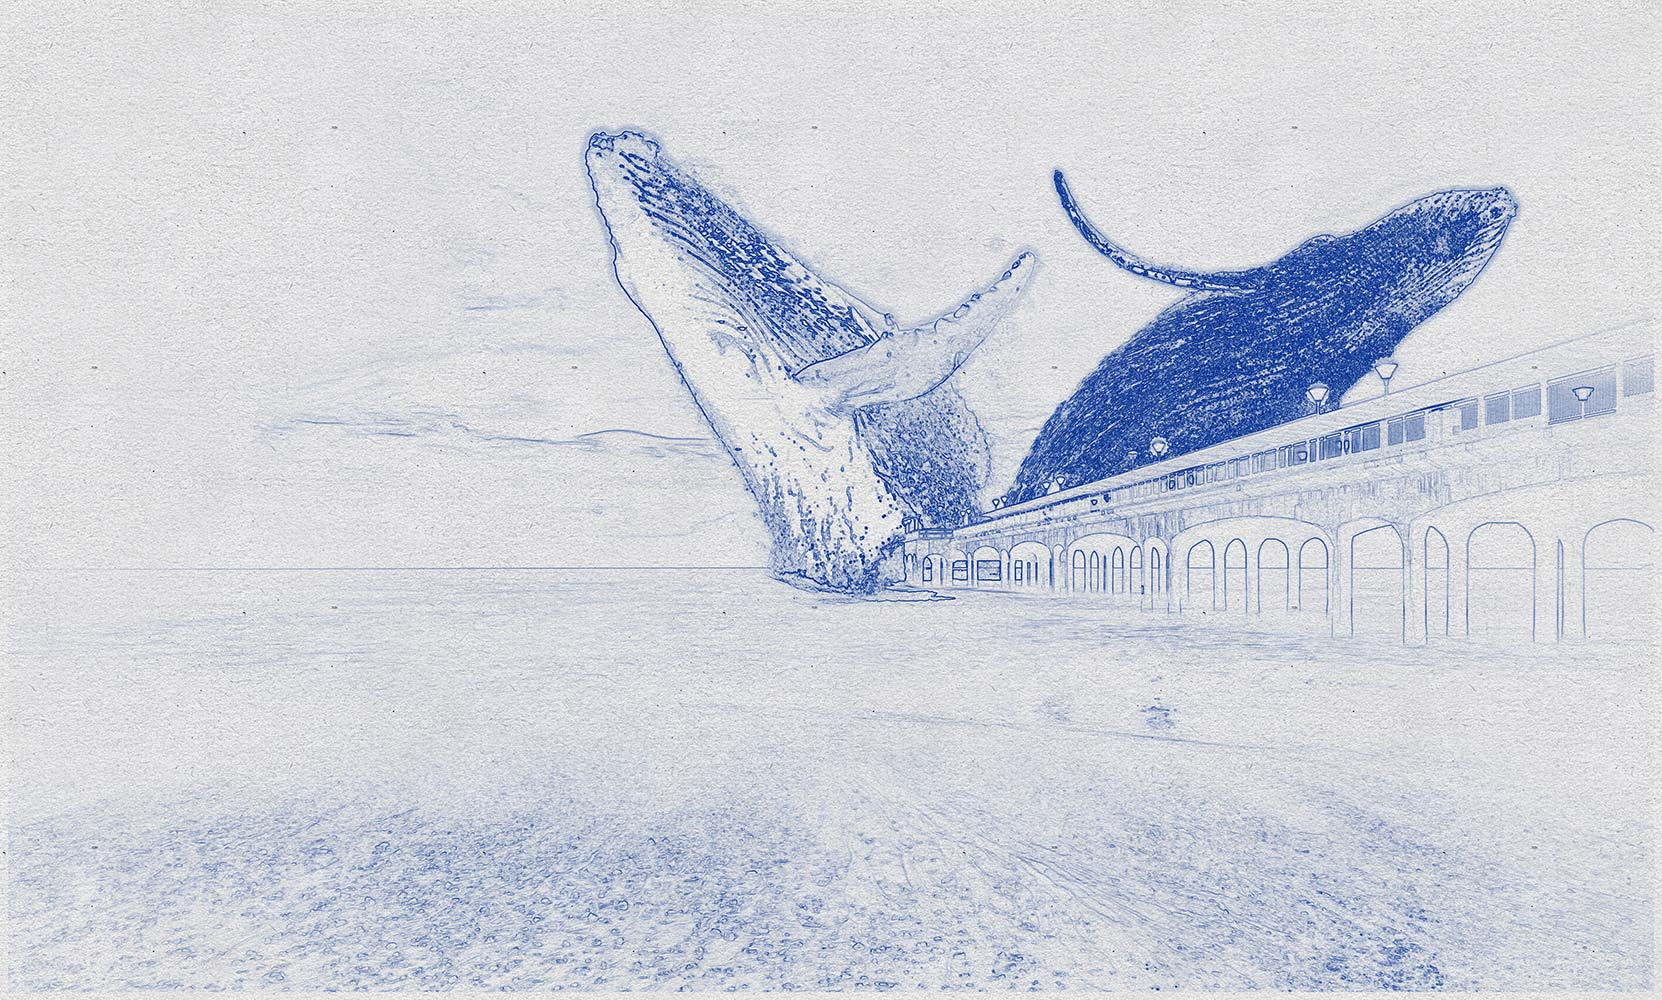 Early sketch for the Whale project